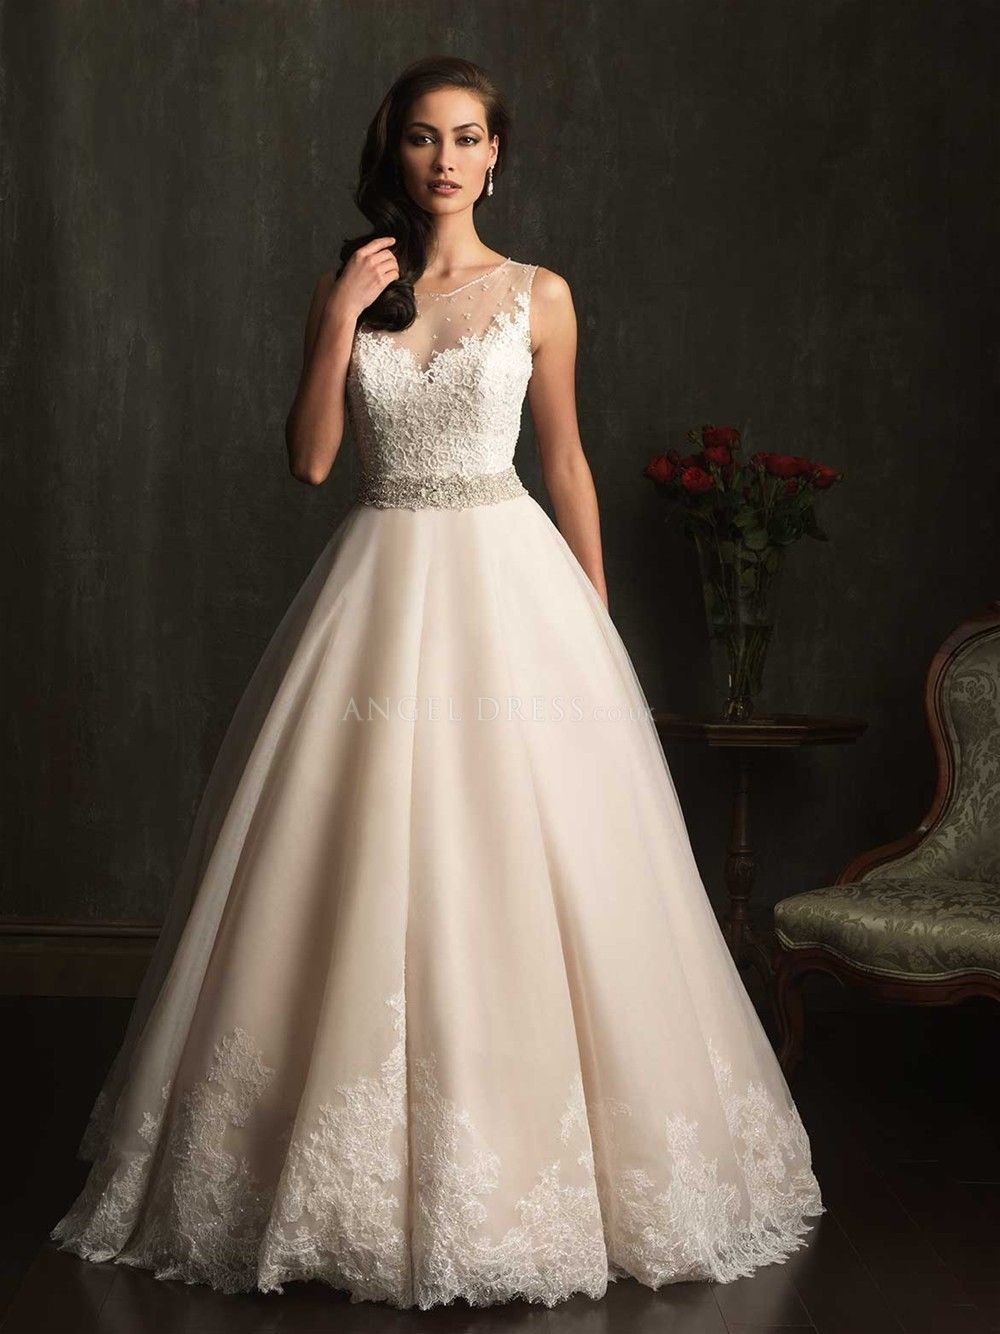 Dramatic wedding dresses  Ball Gown Jewel Lace u Tulle With Sash Ribbon Floor Length Dramatic